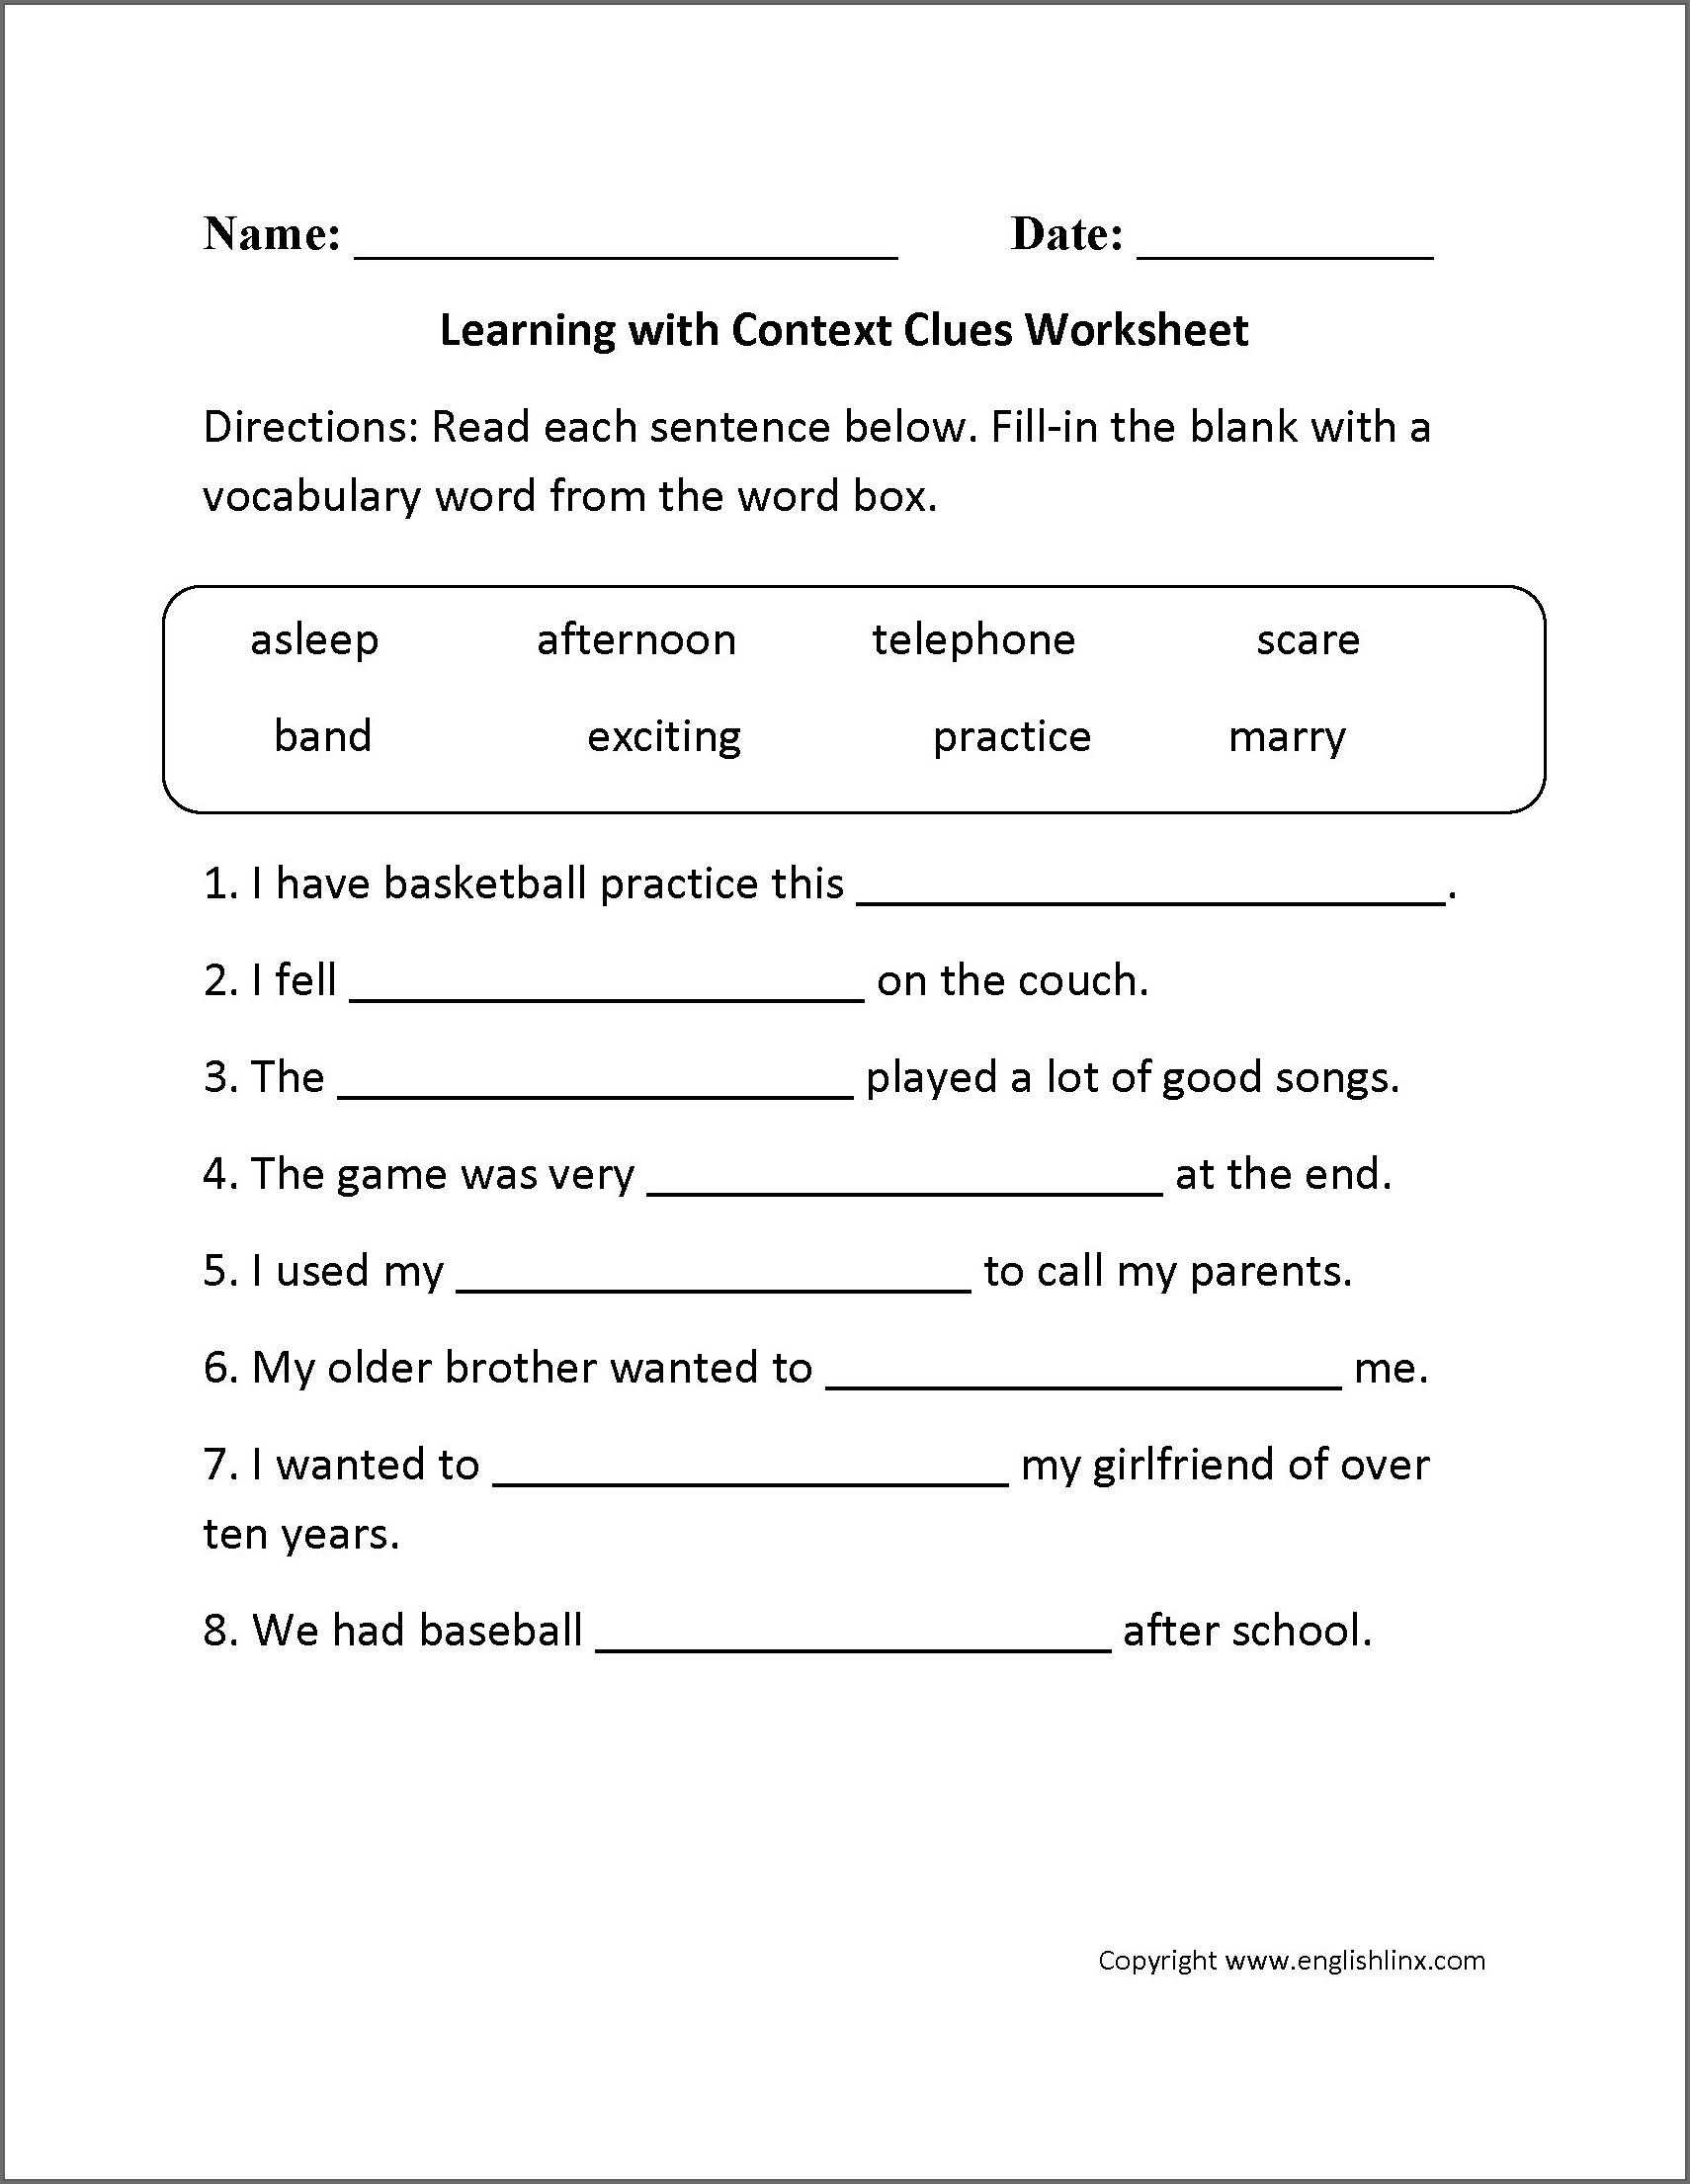 Oceans and Continents Worksheets Printable 6th Grade Continents and Oceans Worksheets